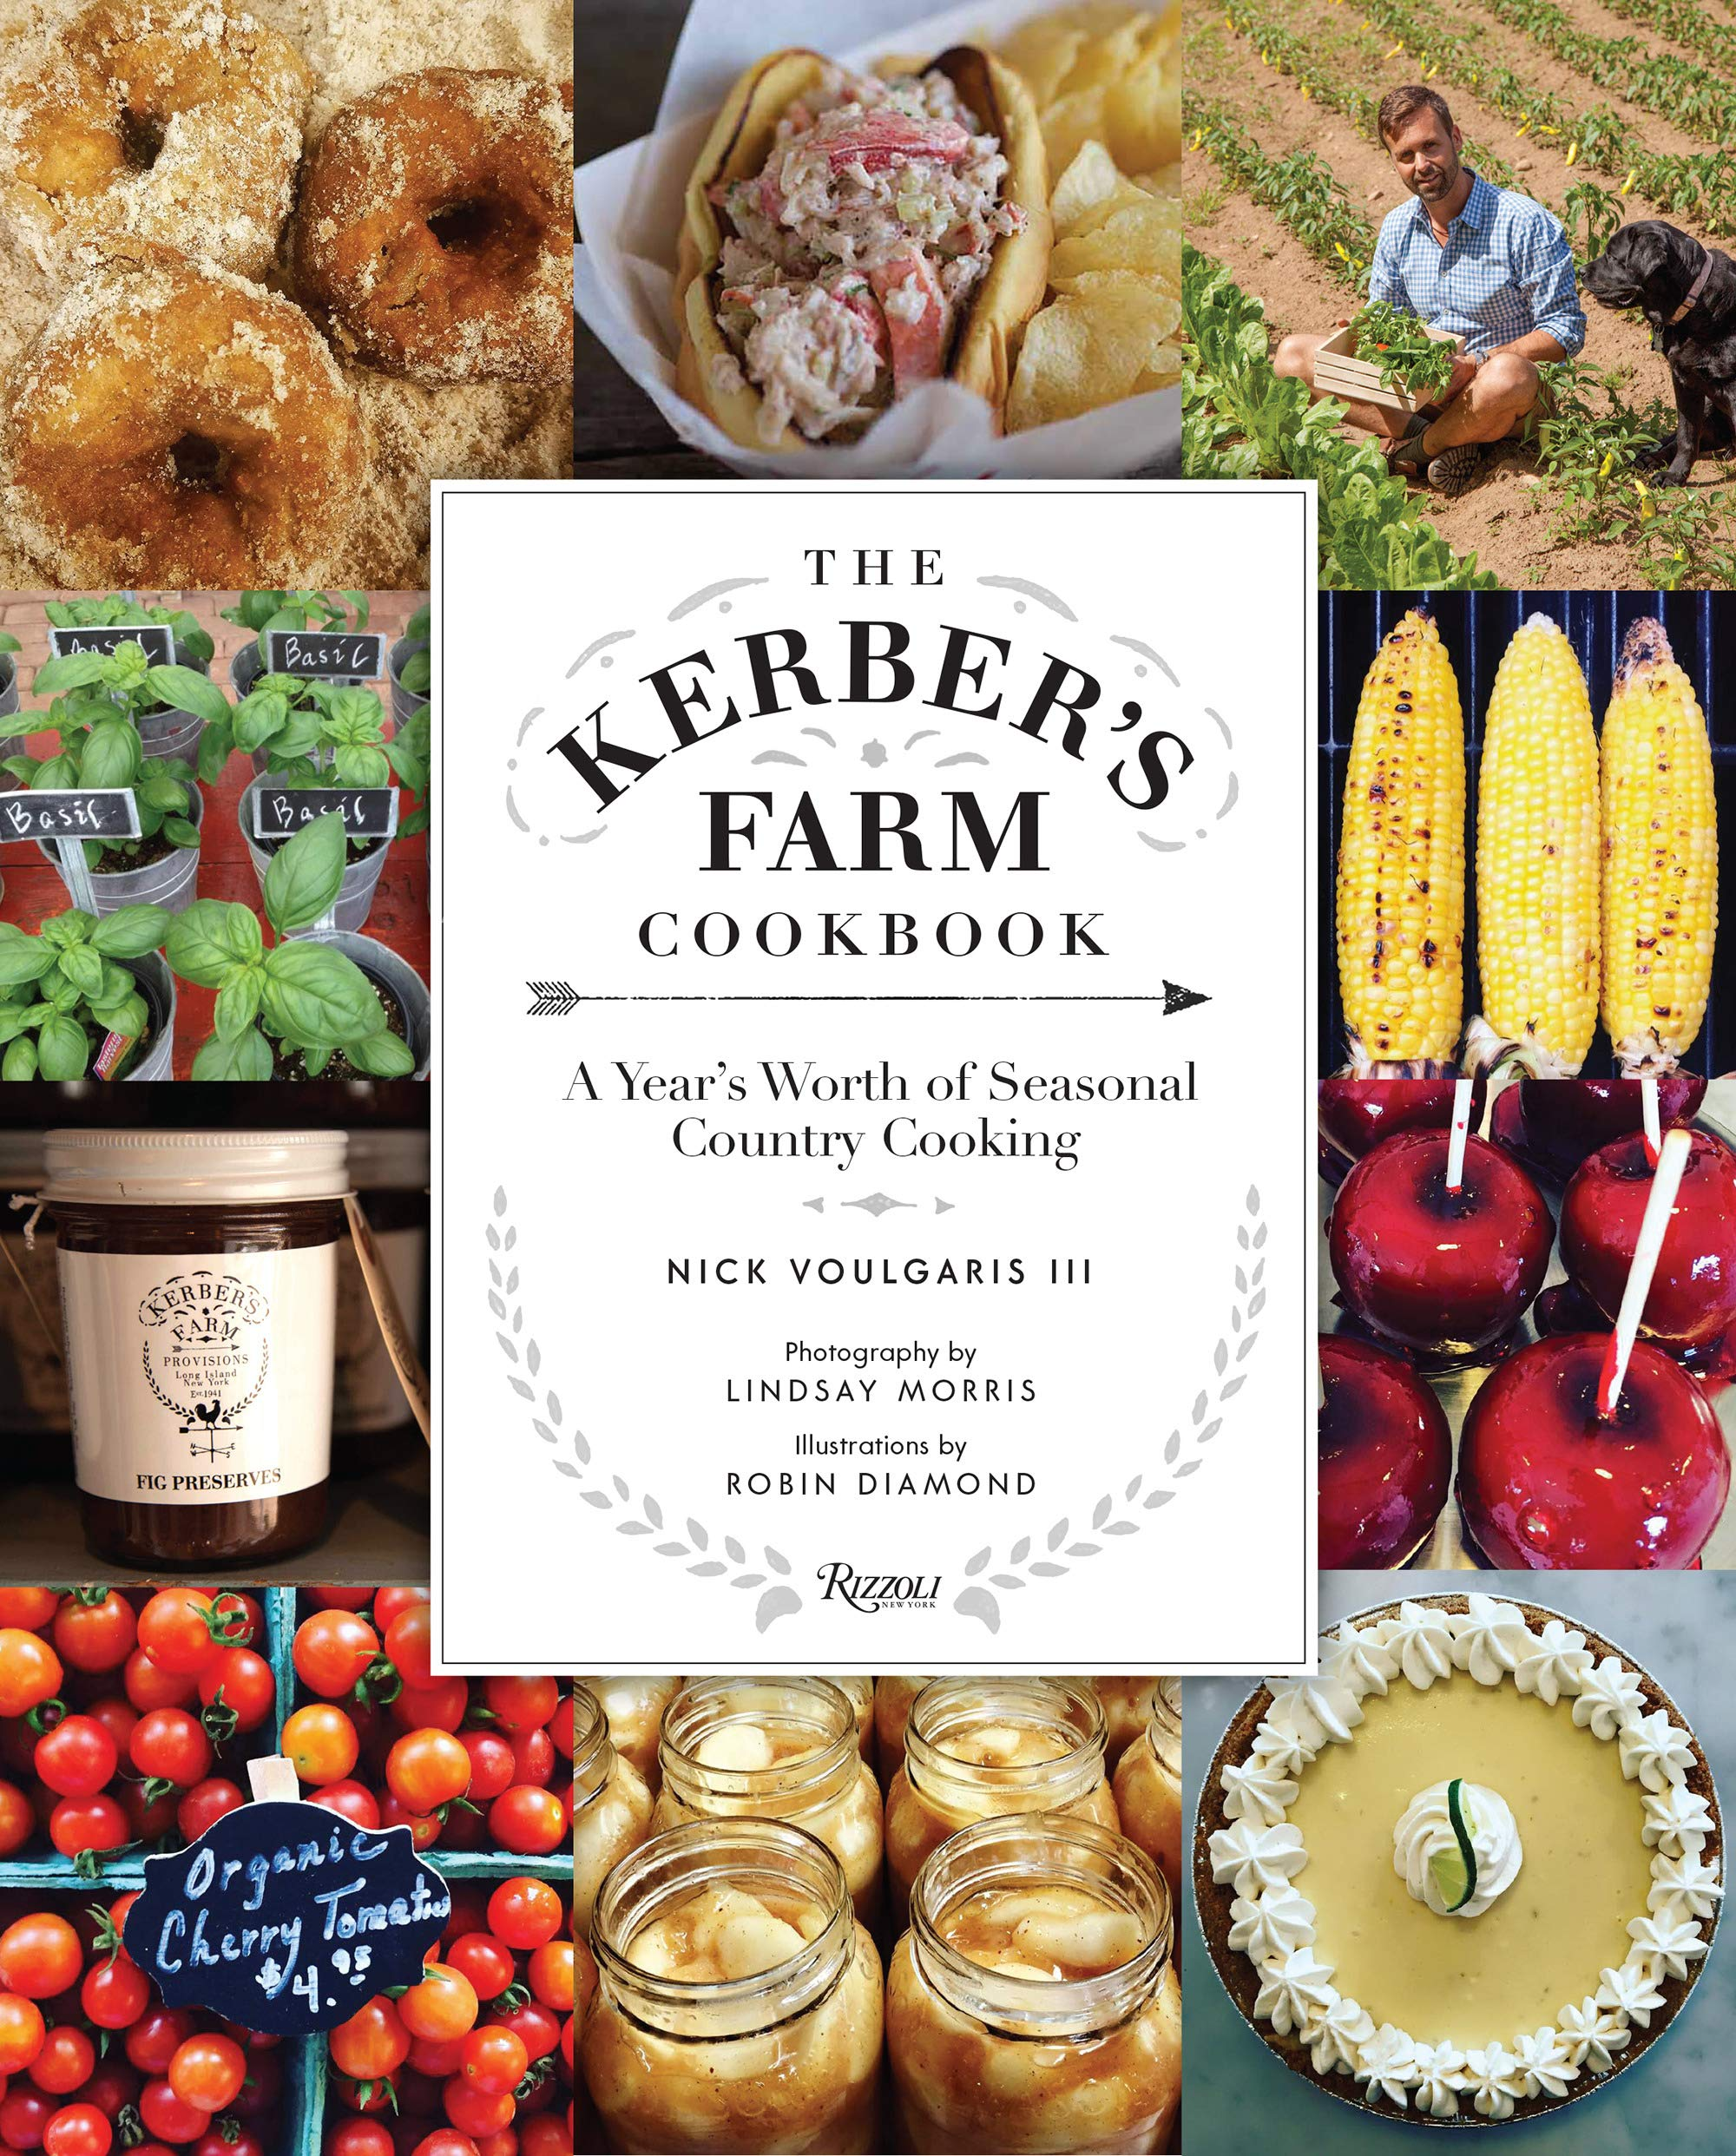 The Kerber's Farm Cookbook: A Year's Worth of Seasonal